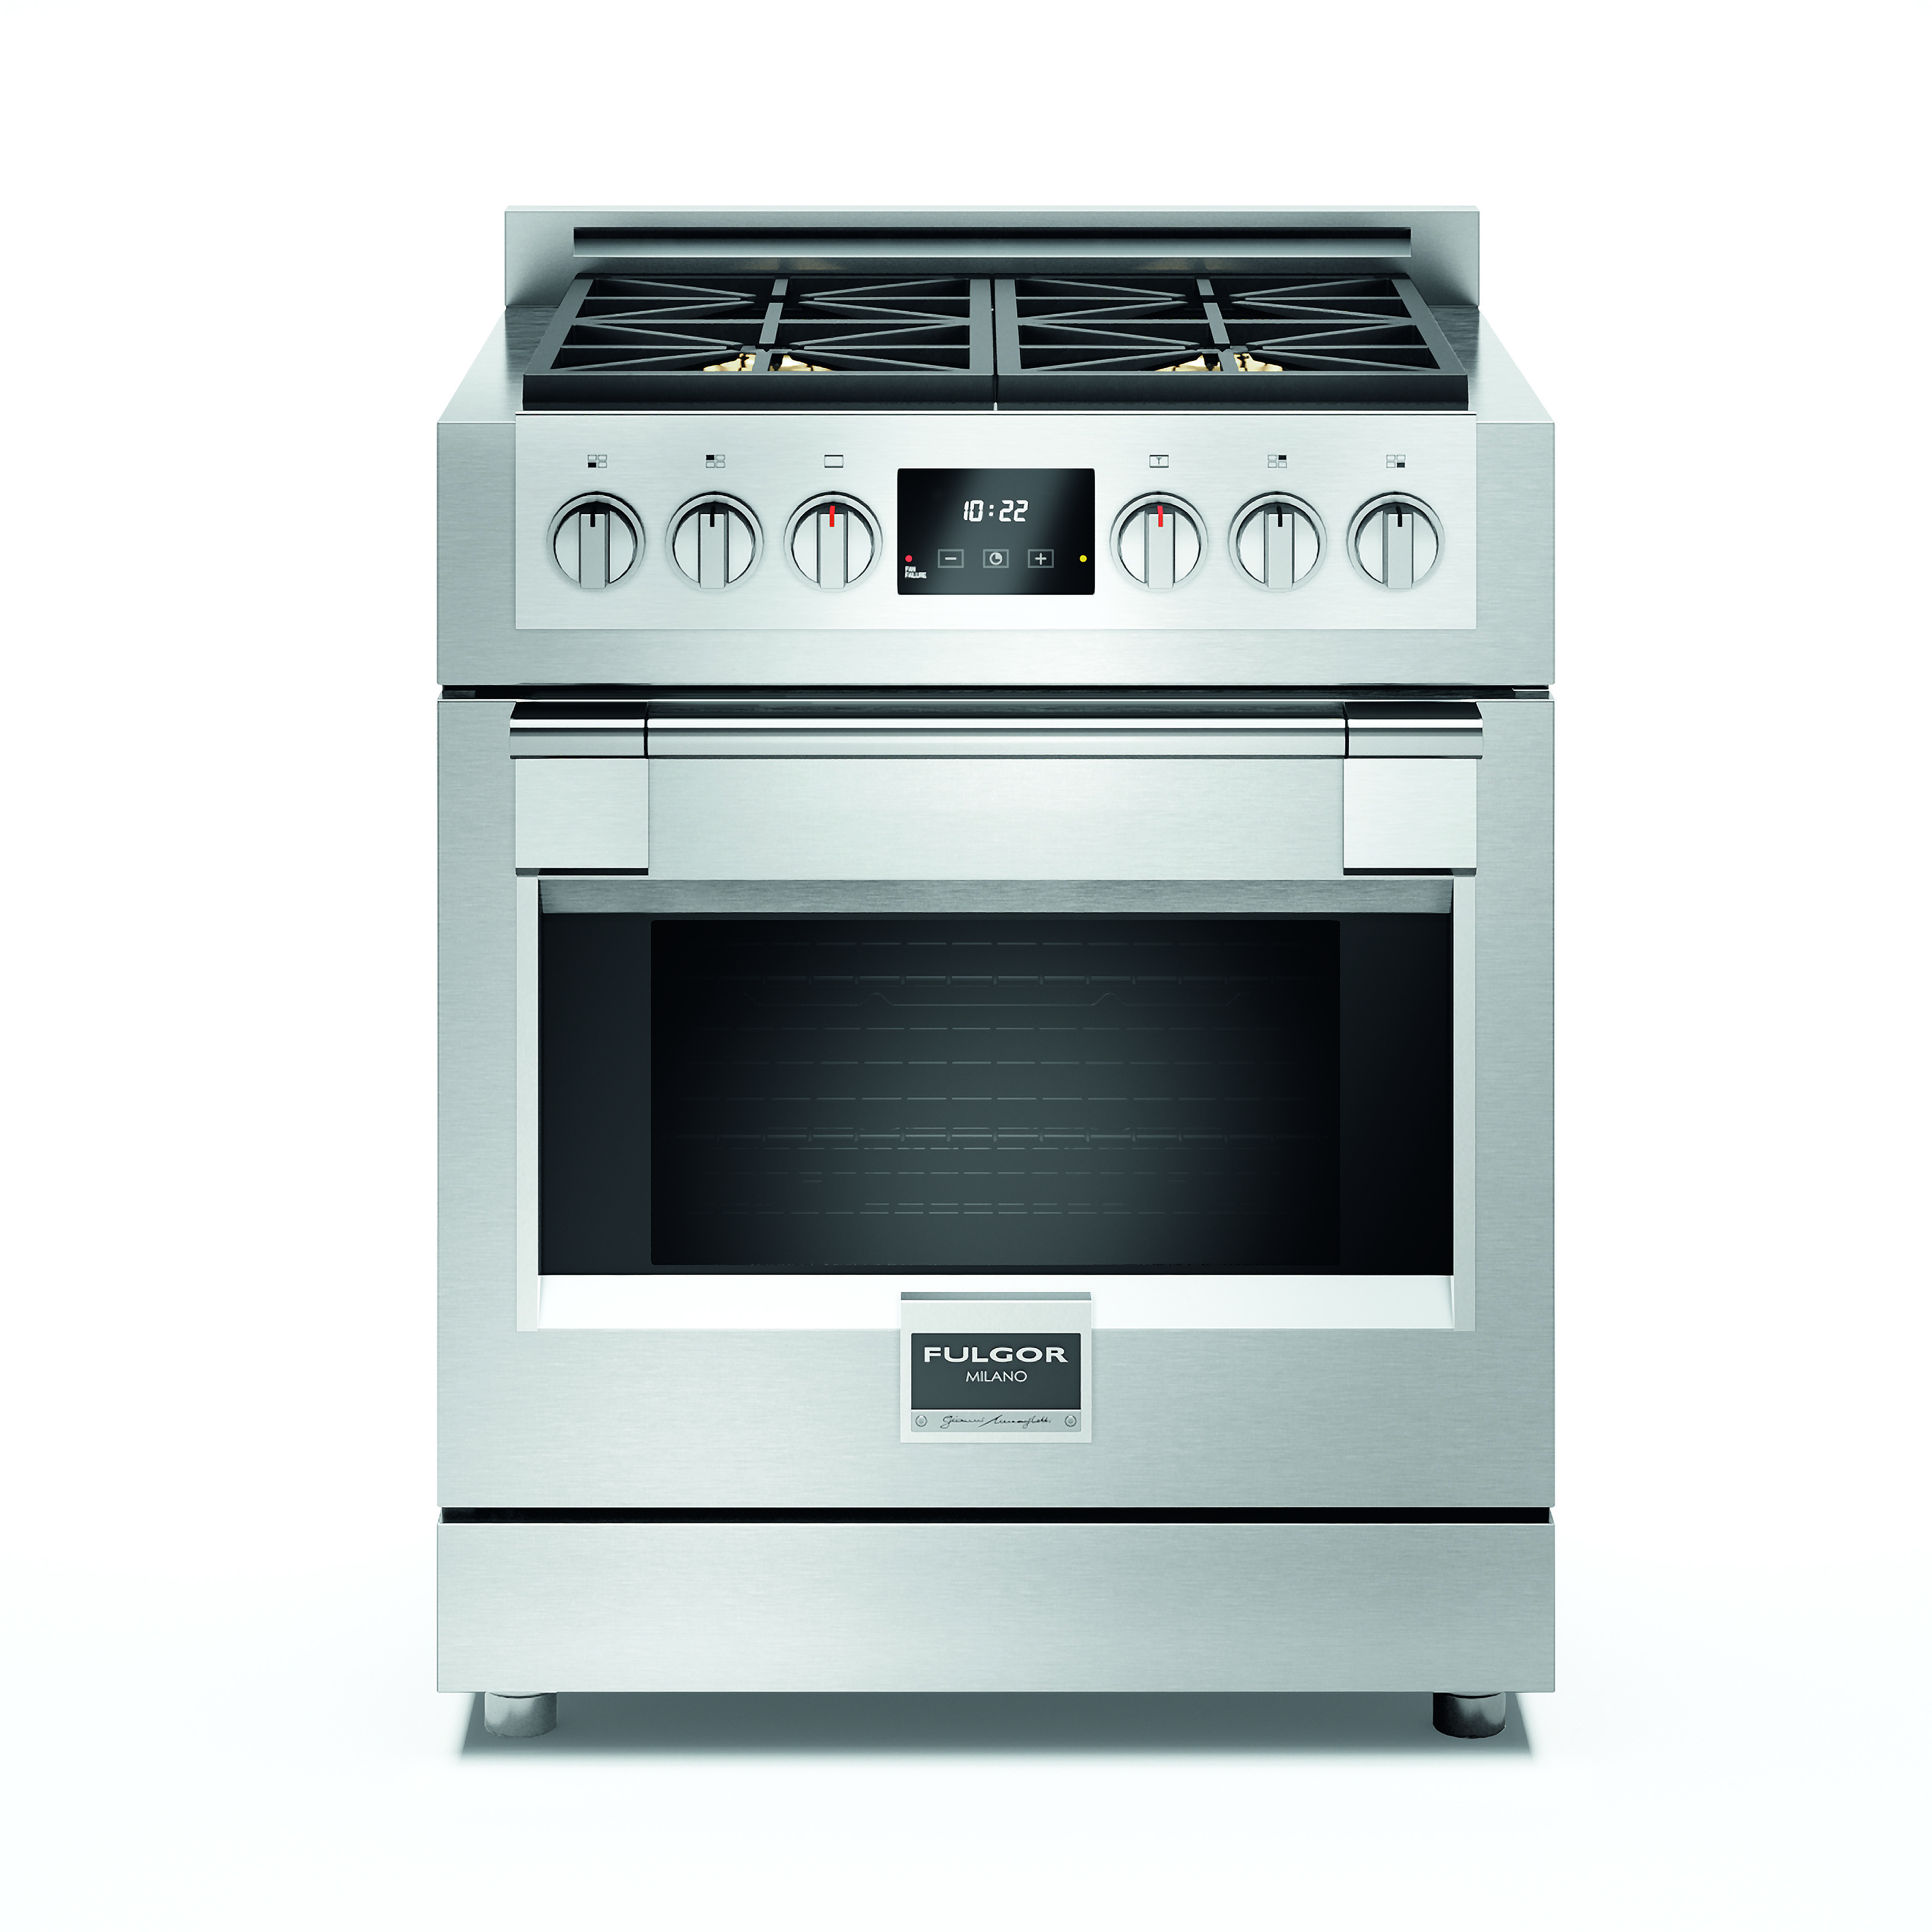 Fulgor Milano F6PGR304S1 30 Inch Freestanding Gas Range with Dual ...